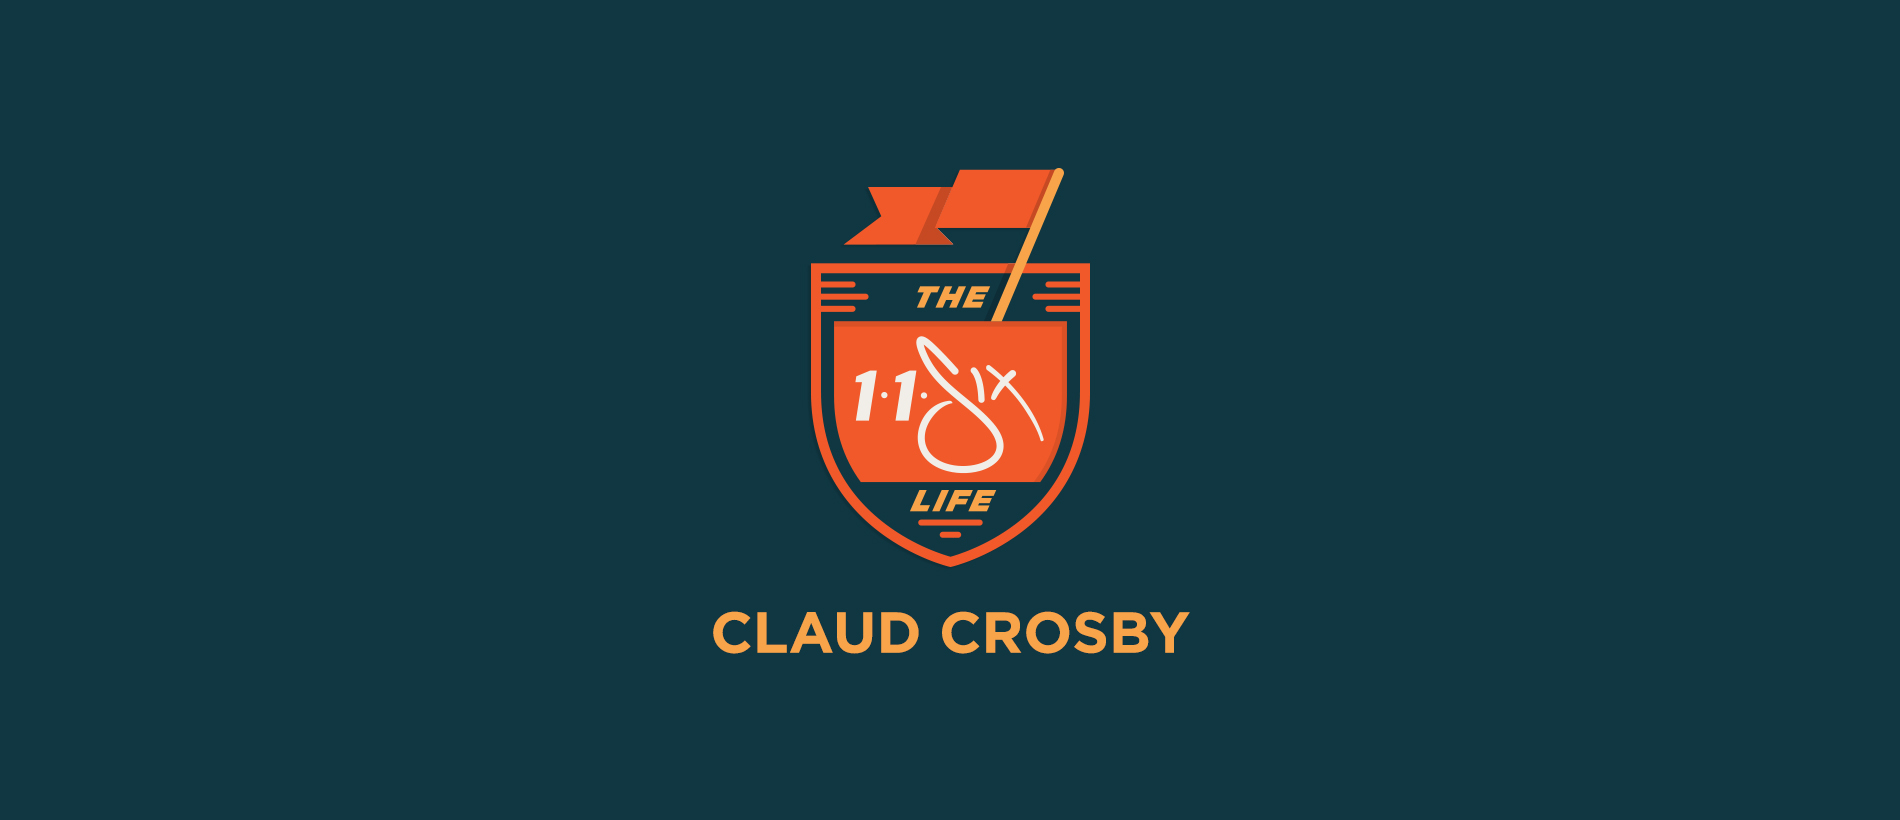 116 Life x Claud Crosby